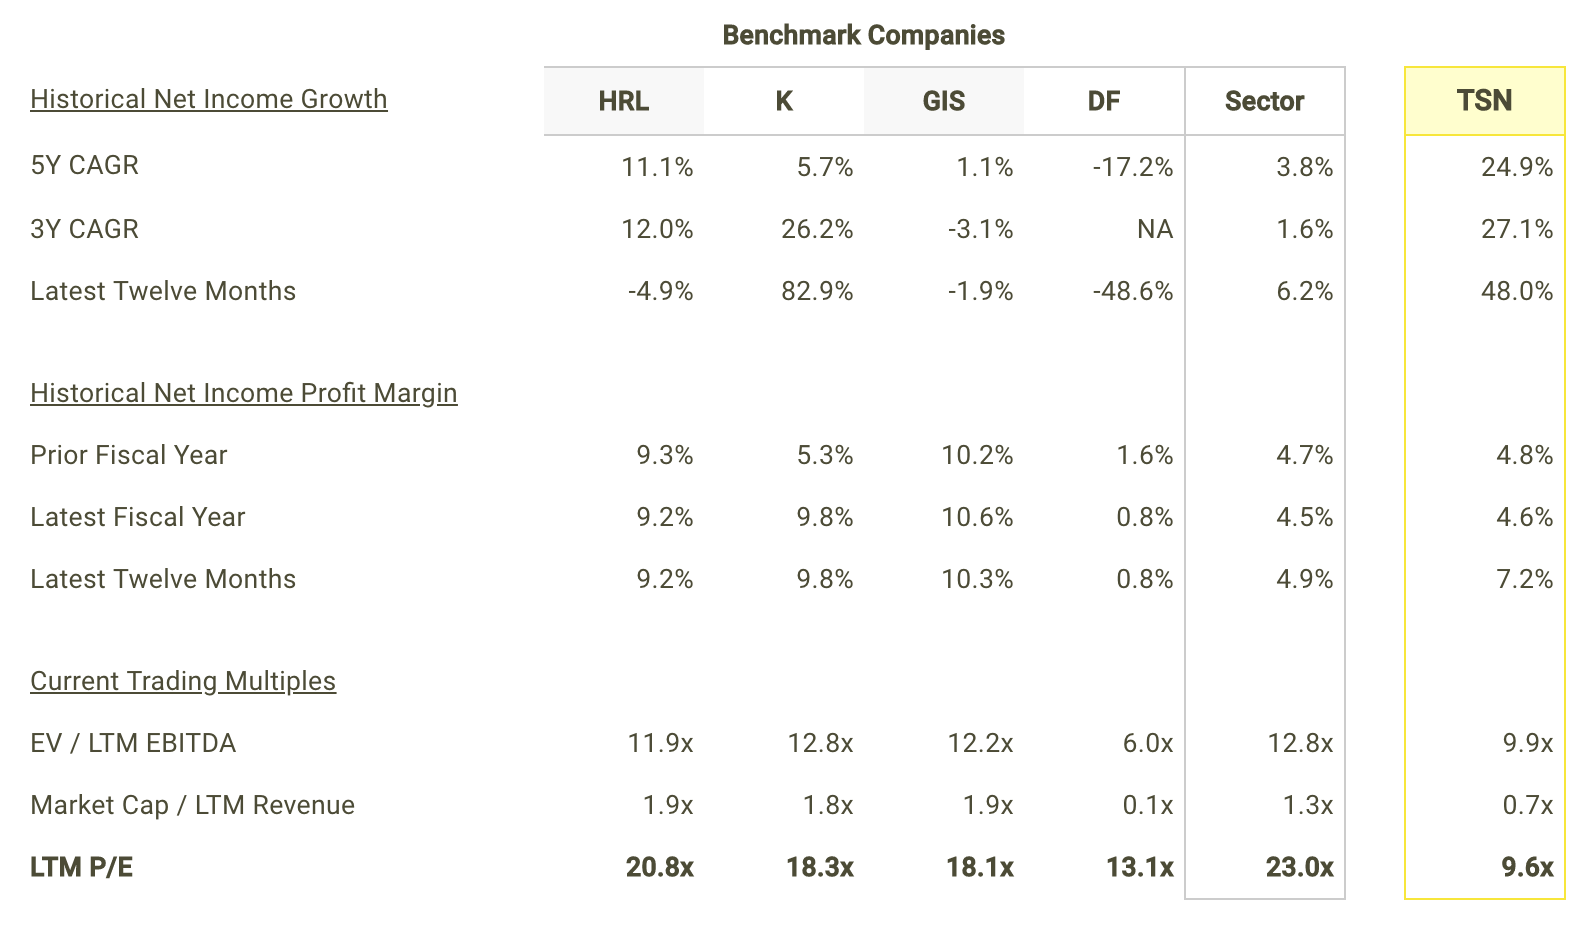 TSN Net Income Growth and Margins vs Peers Table